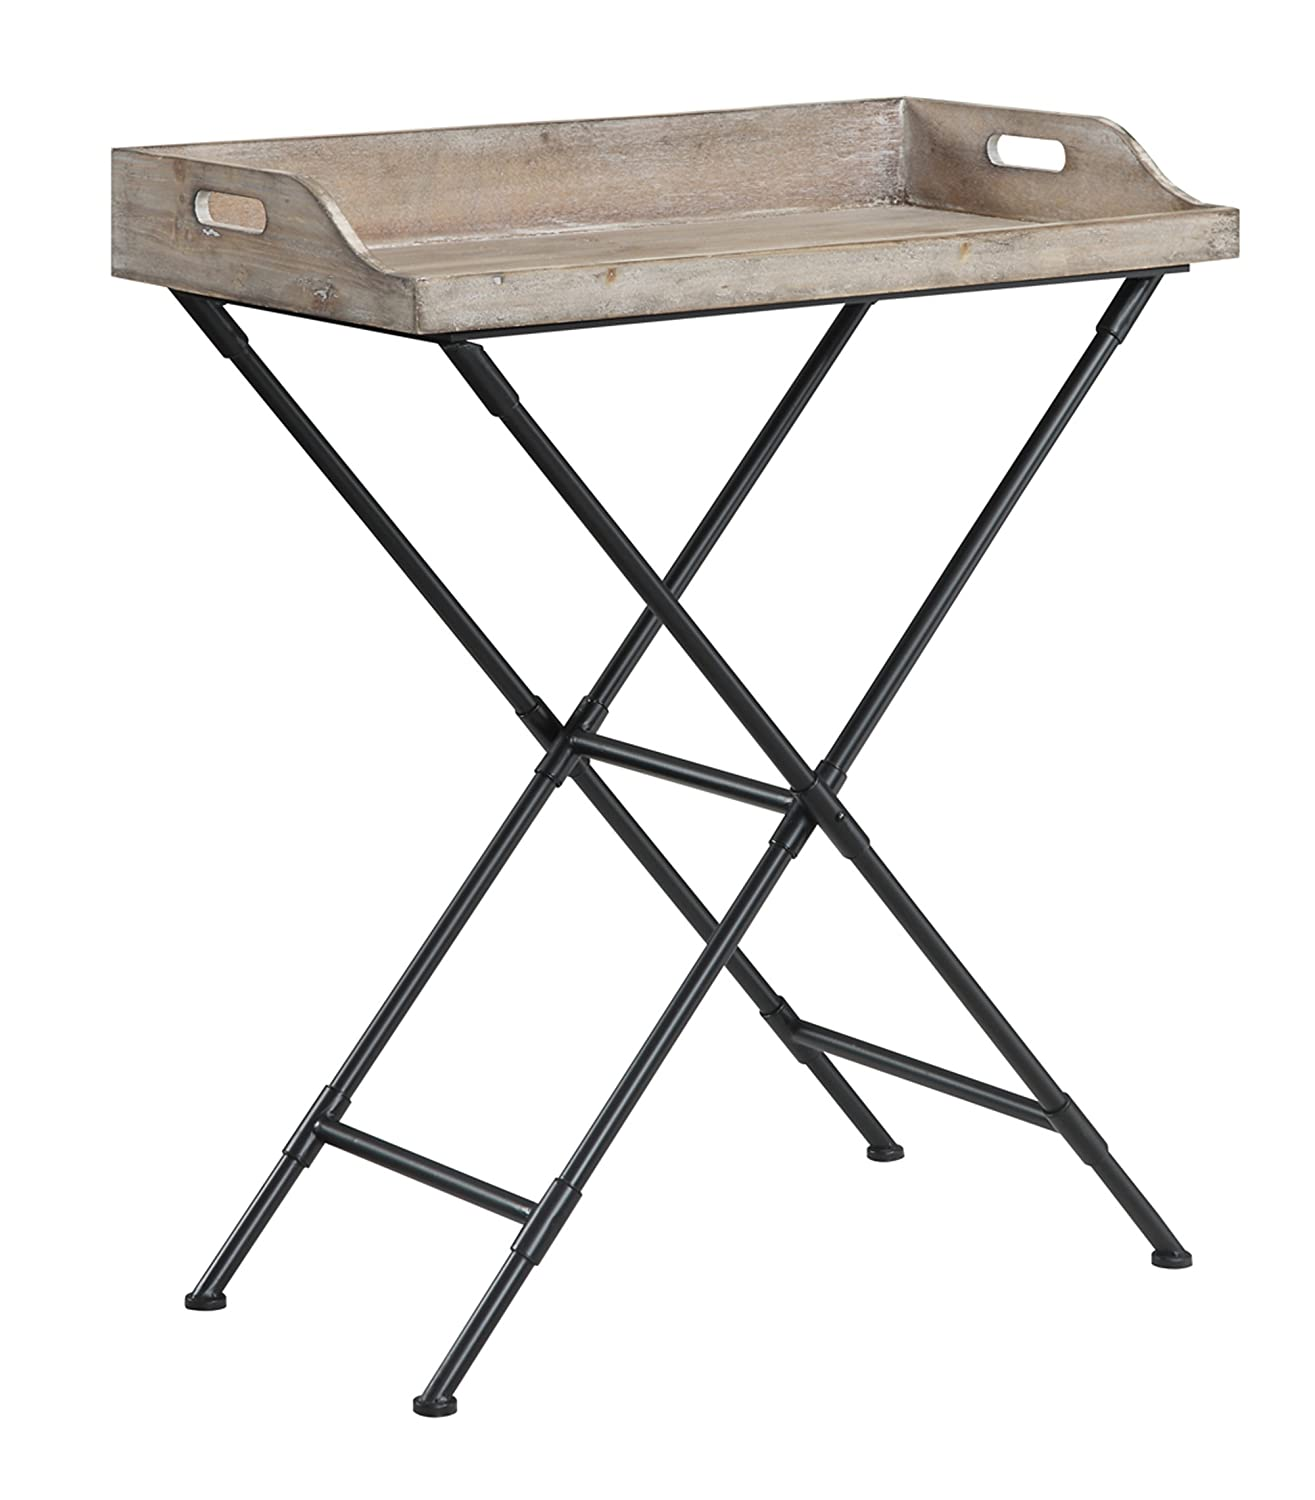 Convenience Concepts Wyoming Folding Serving Bar Table, Antique Wooden Tray 227677